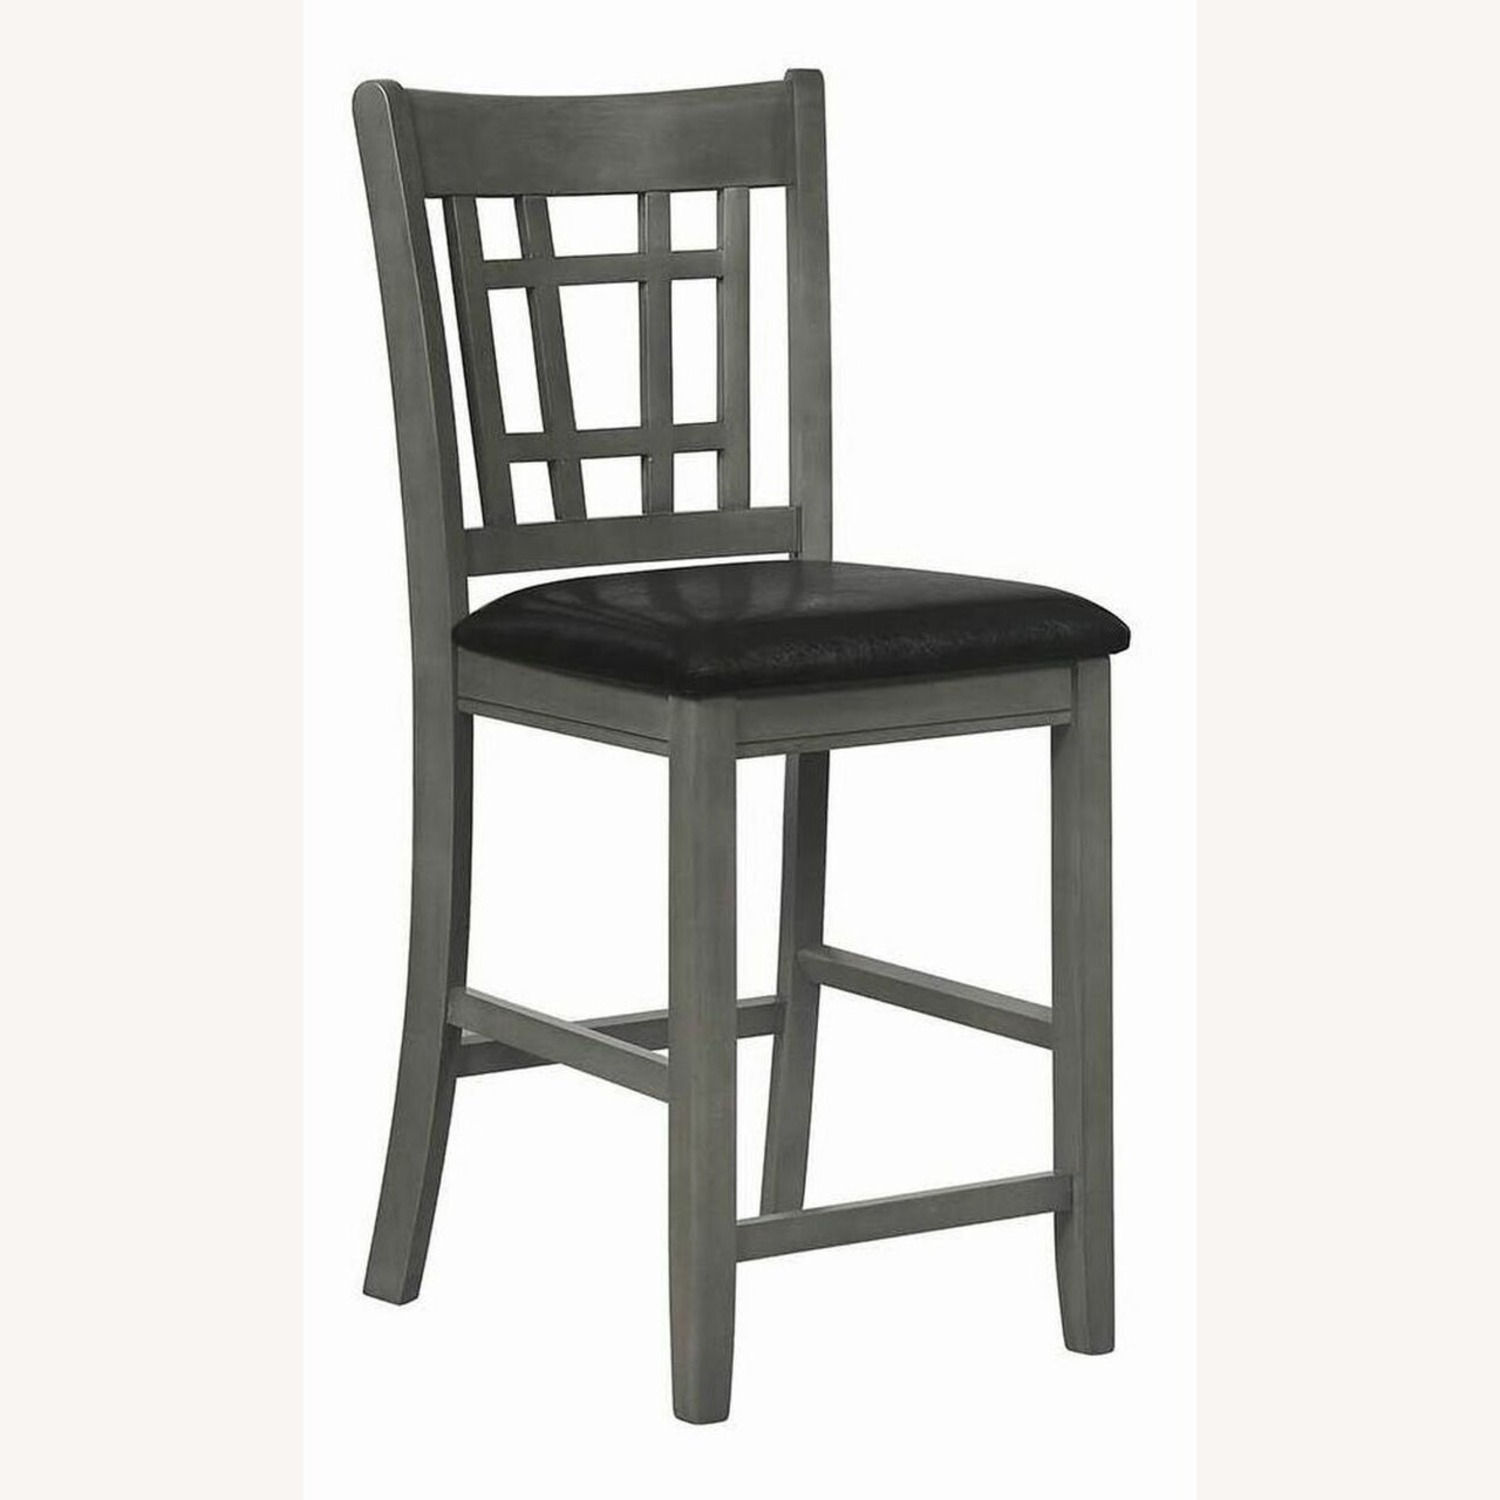 Counter Height Chair In Medium Gray Finish - image-1